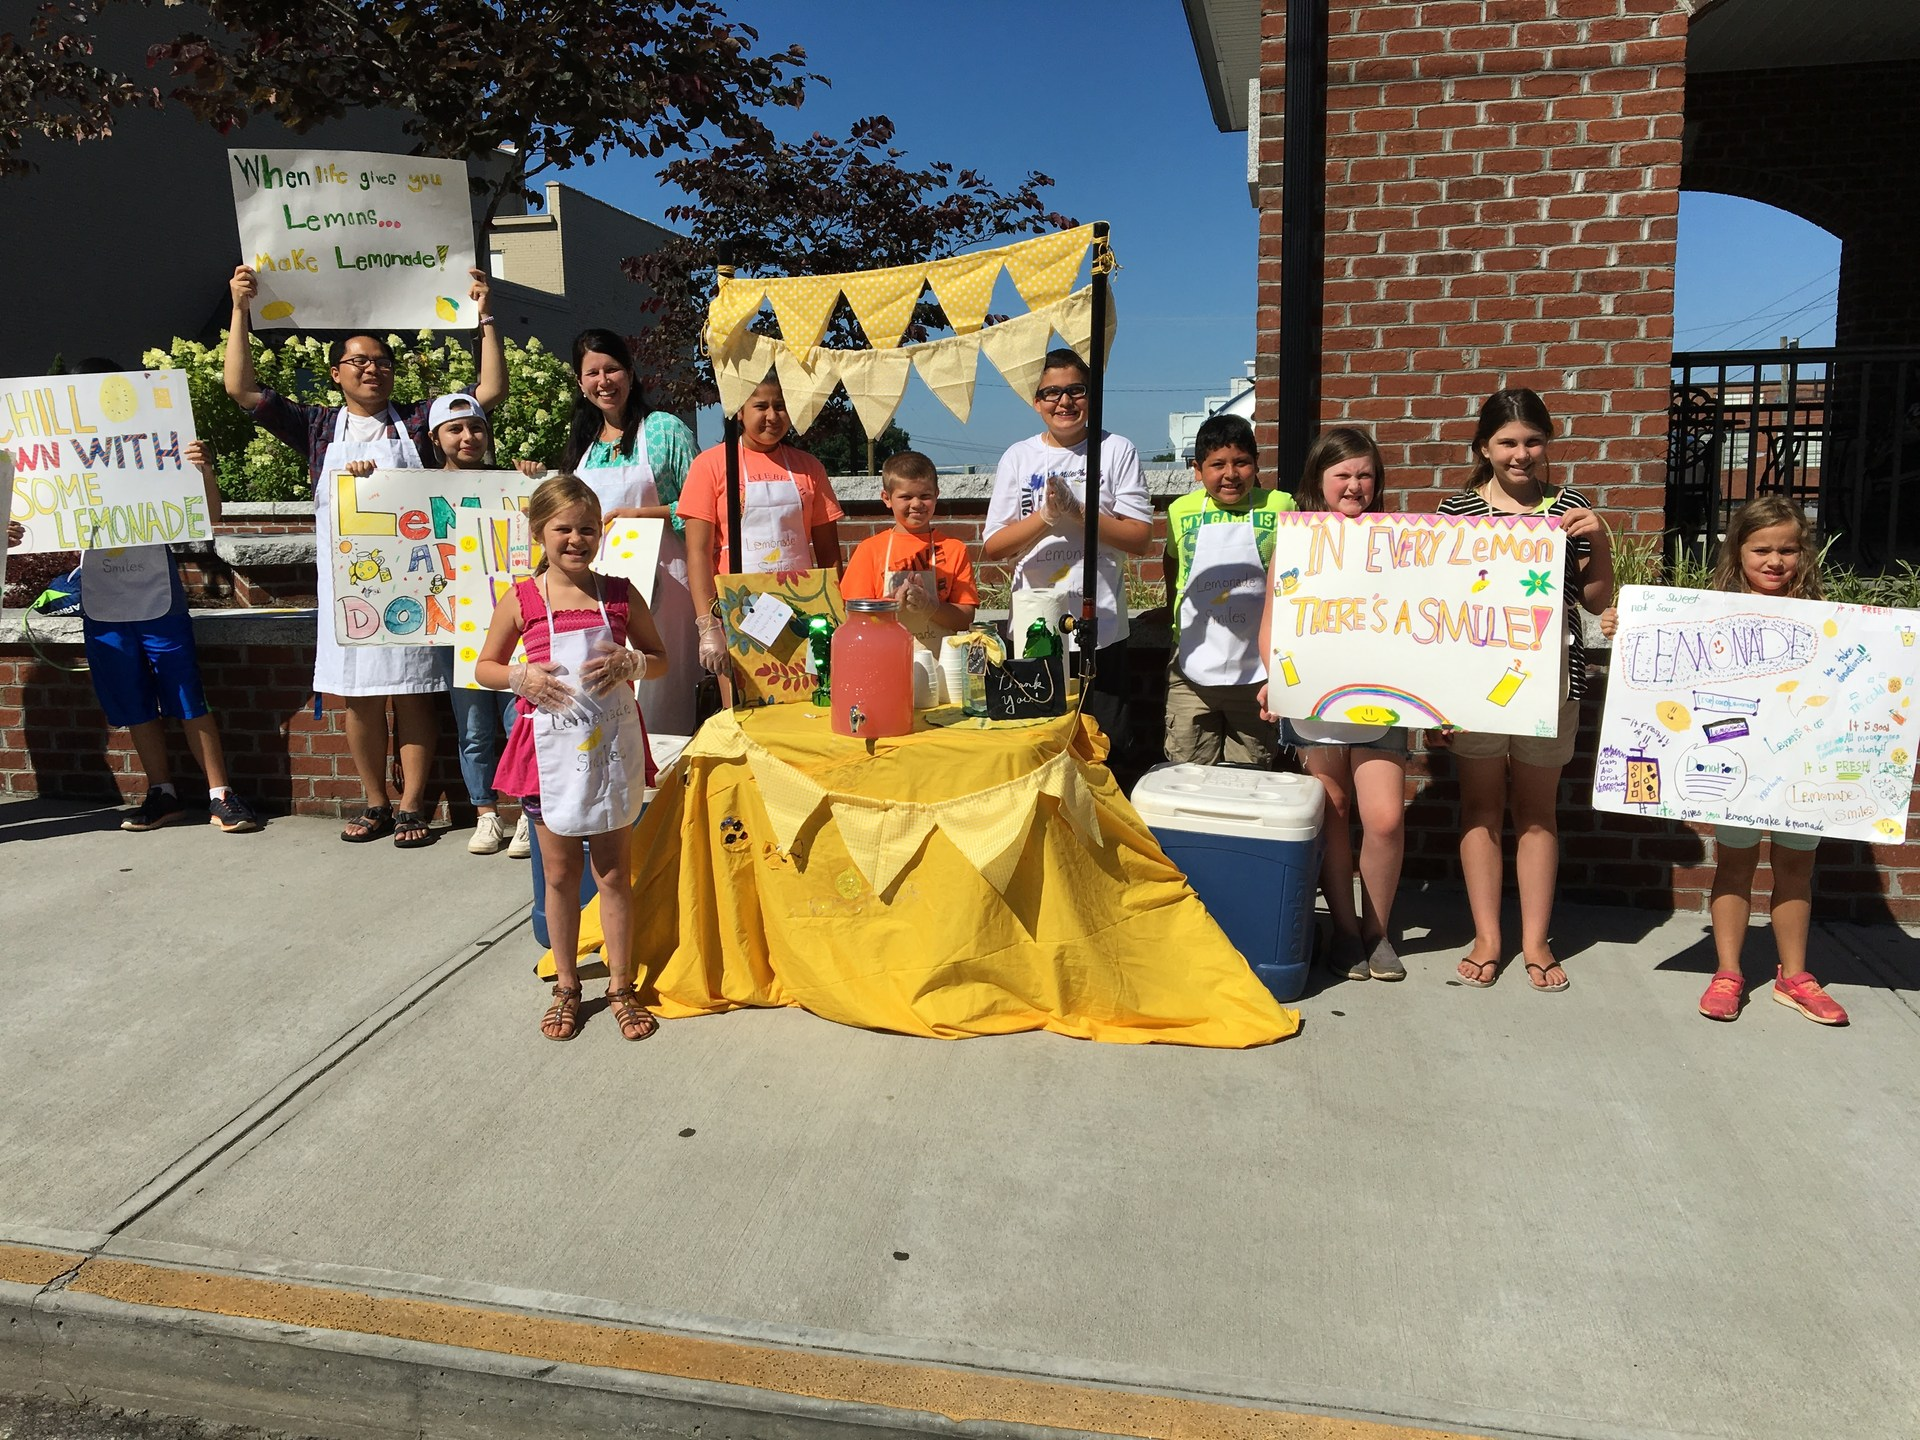 Summer camp students running a lemonade stand